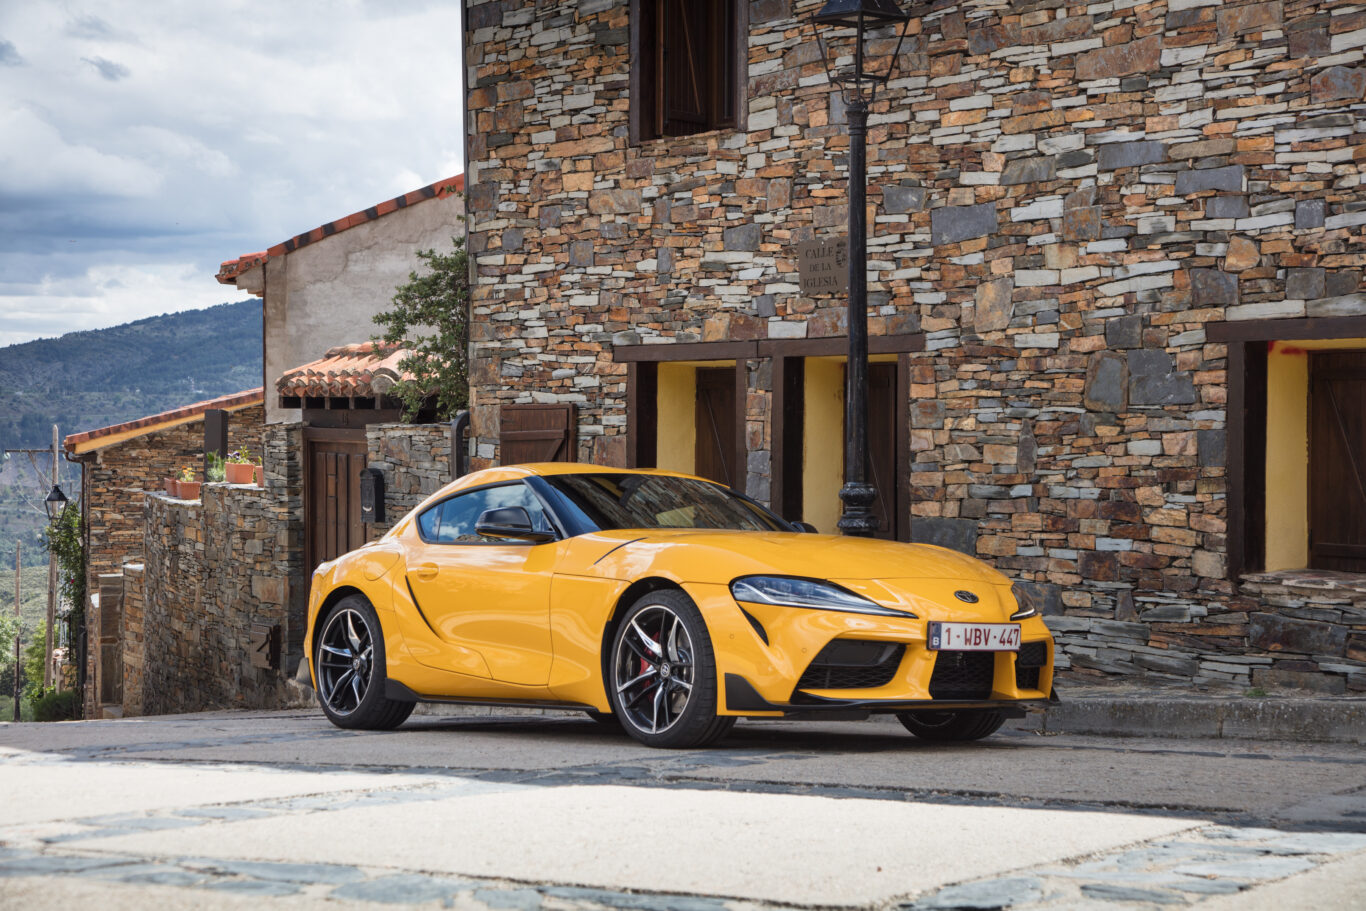 The Supra sits on the same platform as the BMW Z4